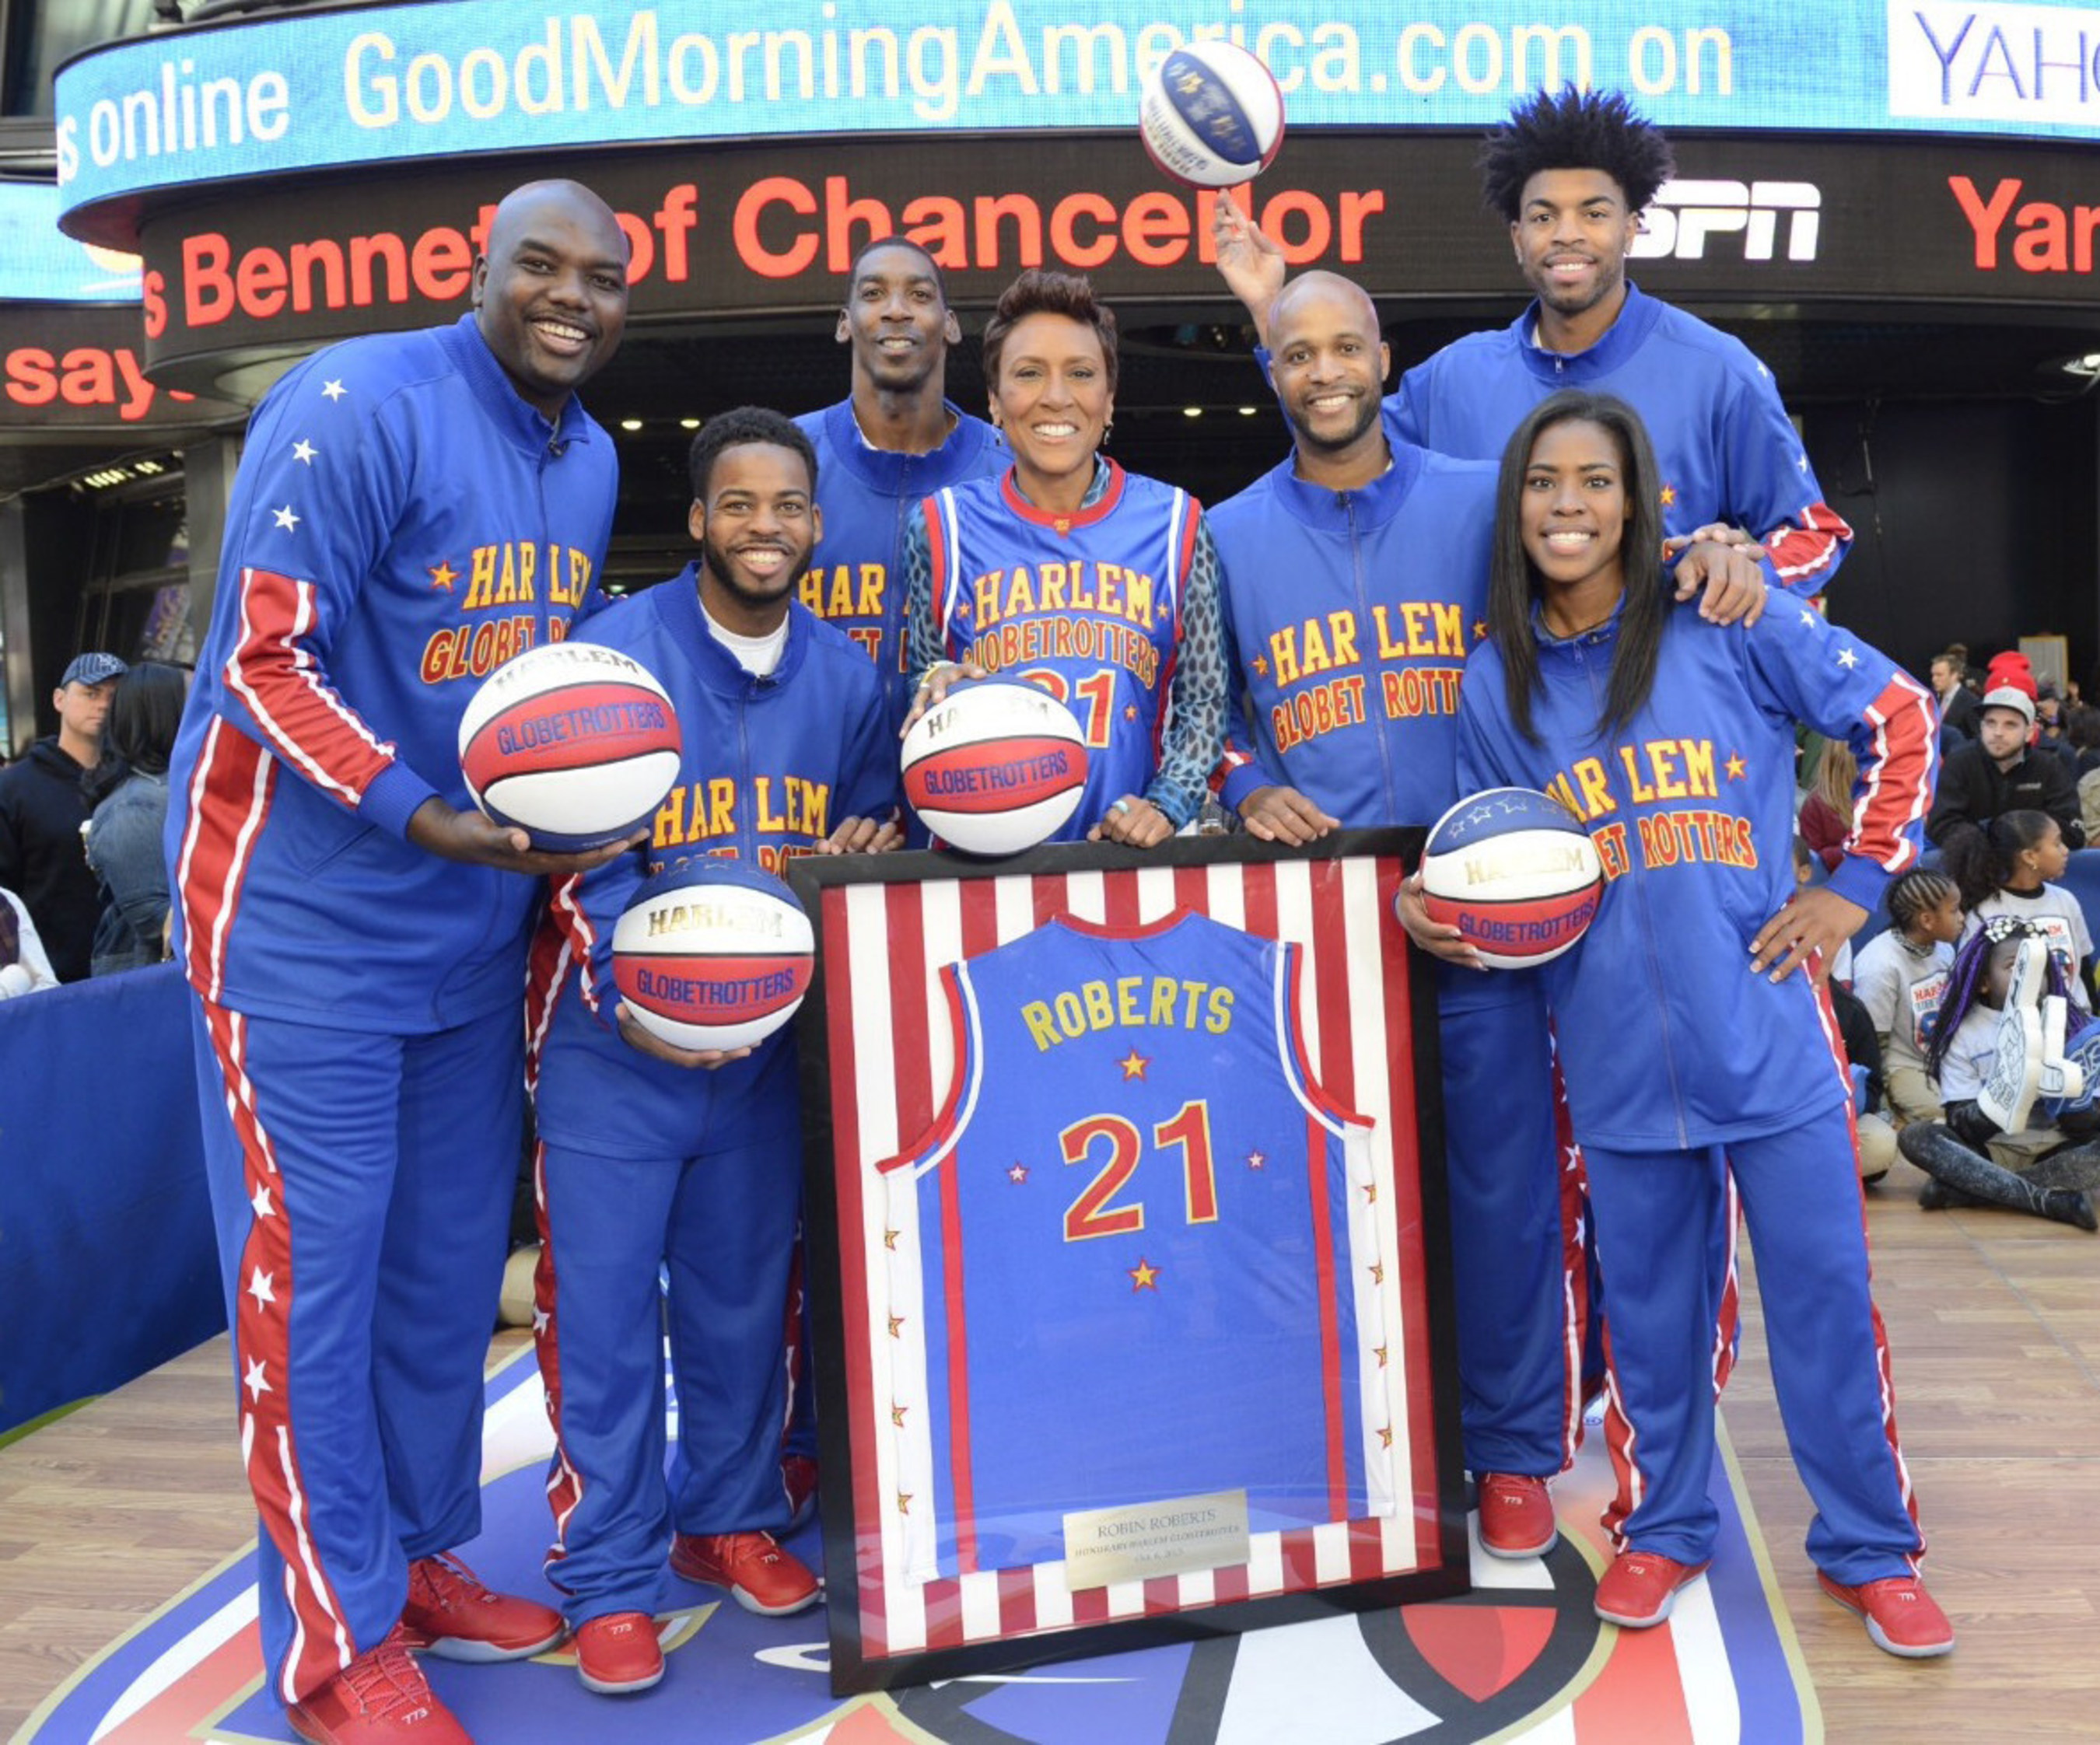 Robin Roberts Named Honorary Harlem Globetrotter; Team Announces The Great Assist Initiative And 90-Year Celebration